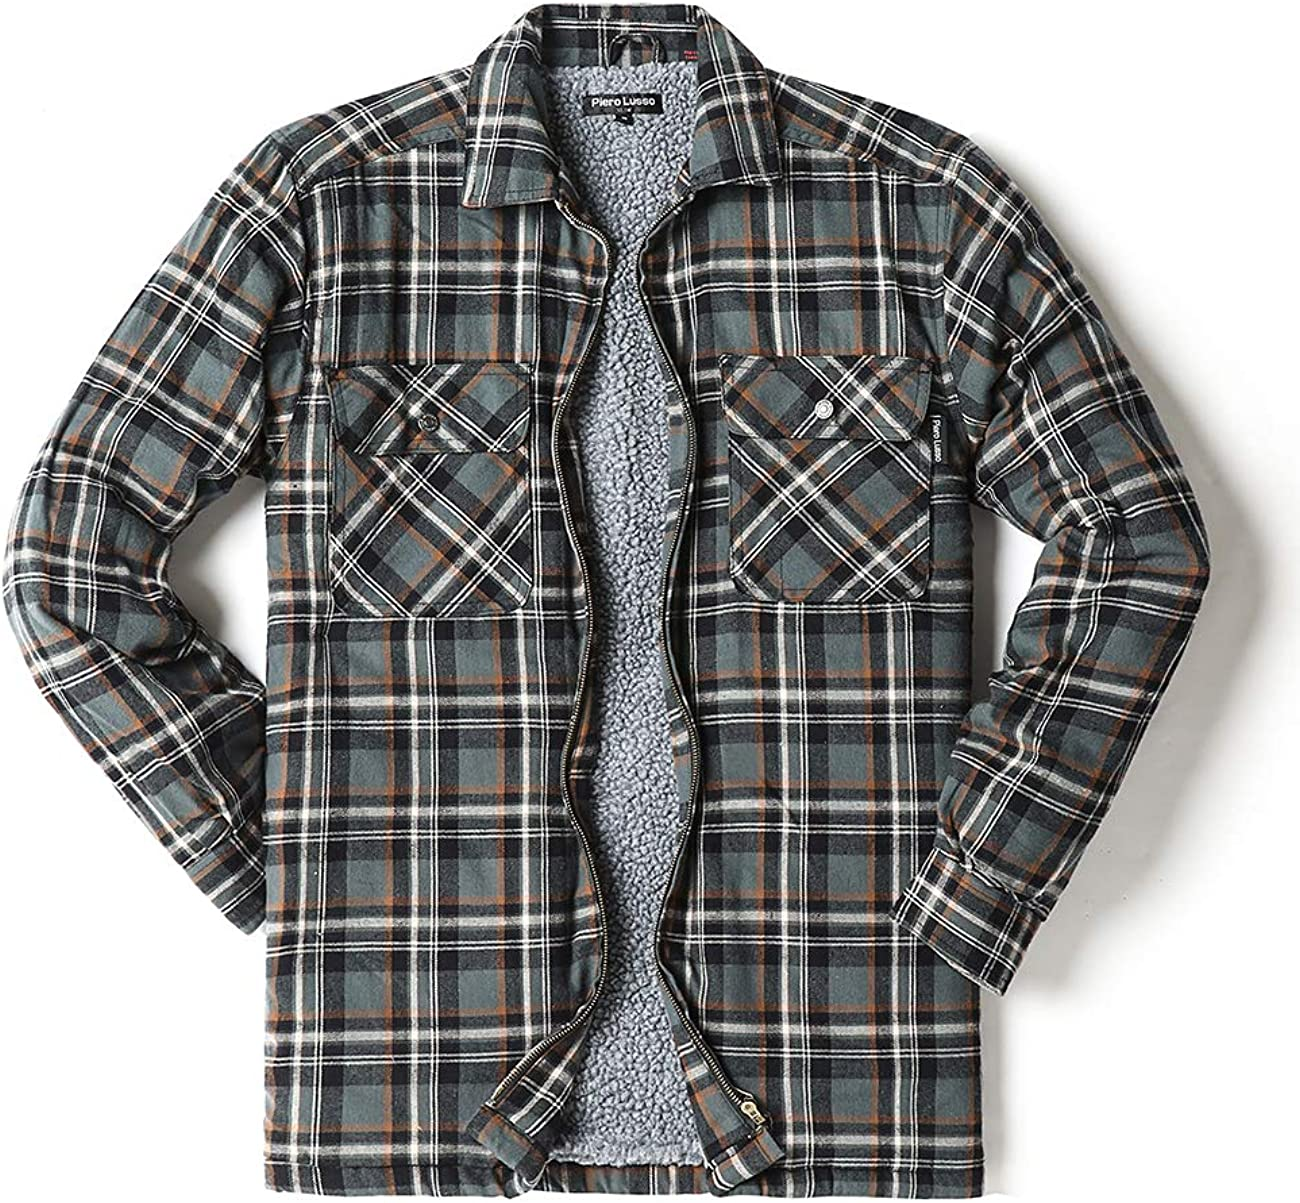 Super special price Piero Lusso Men's Big and Tall Zip Sherpa Marshall Flannel Lined Outlet SALE